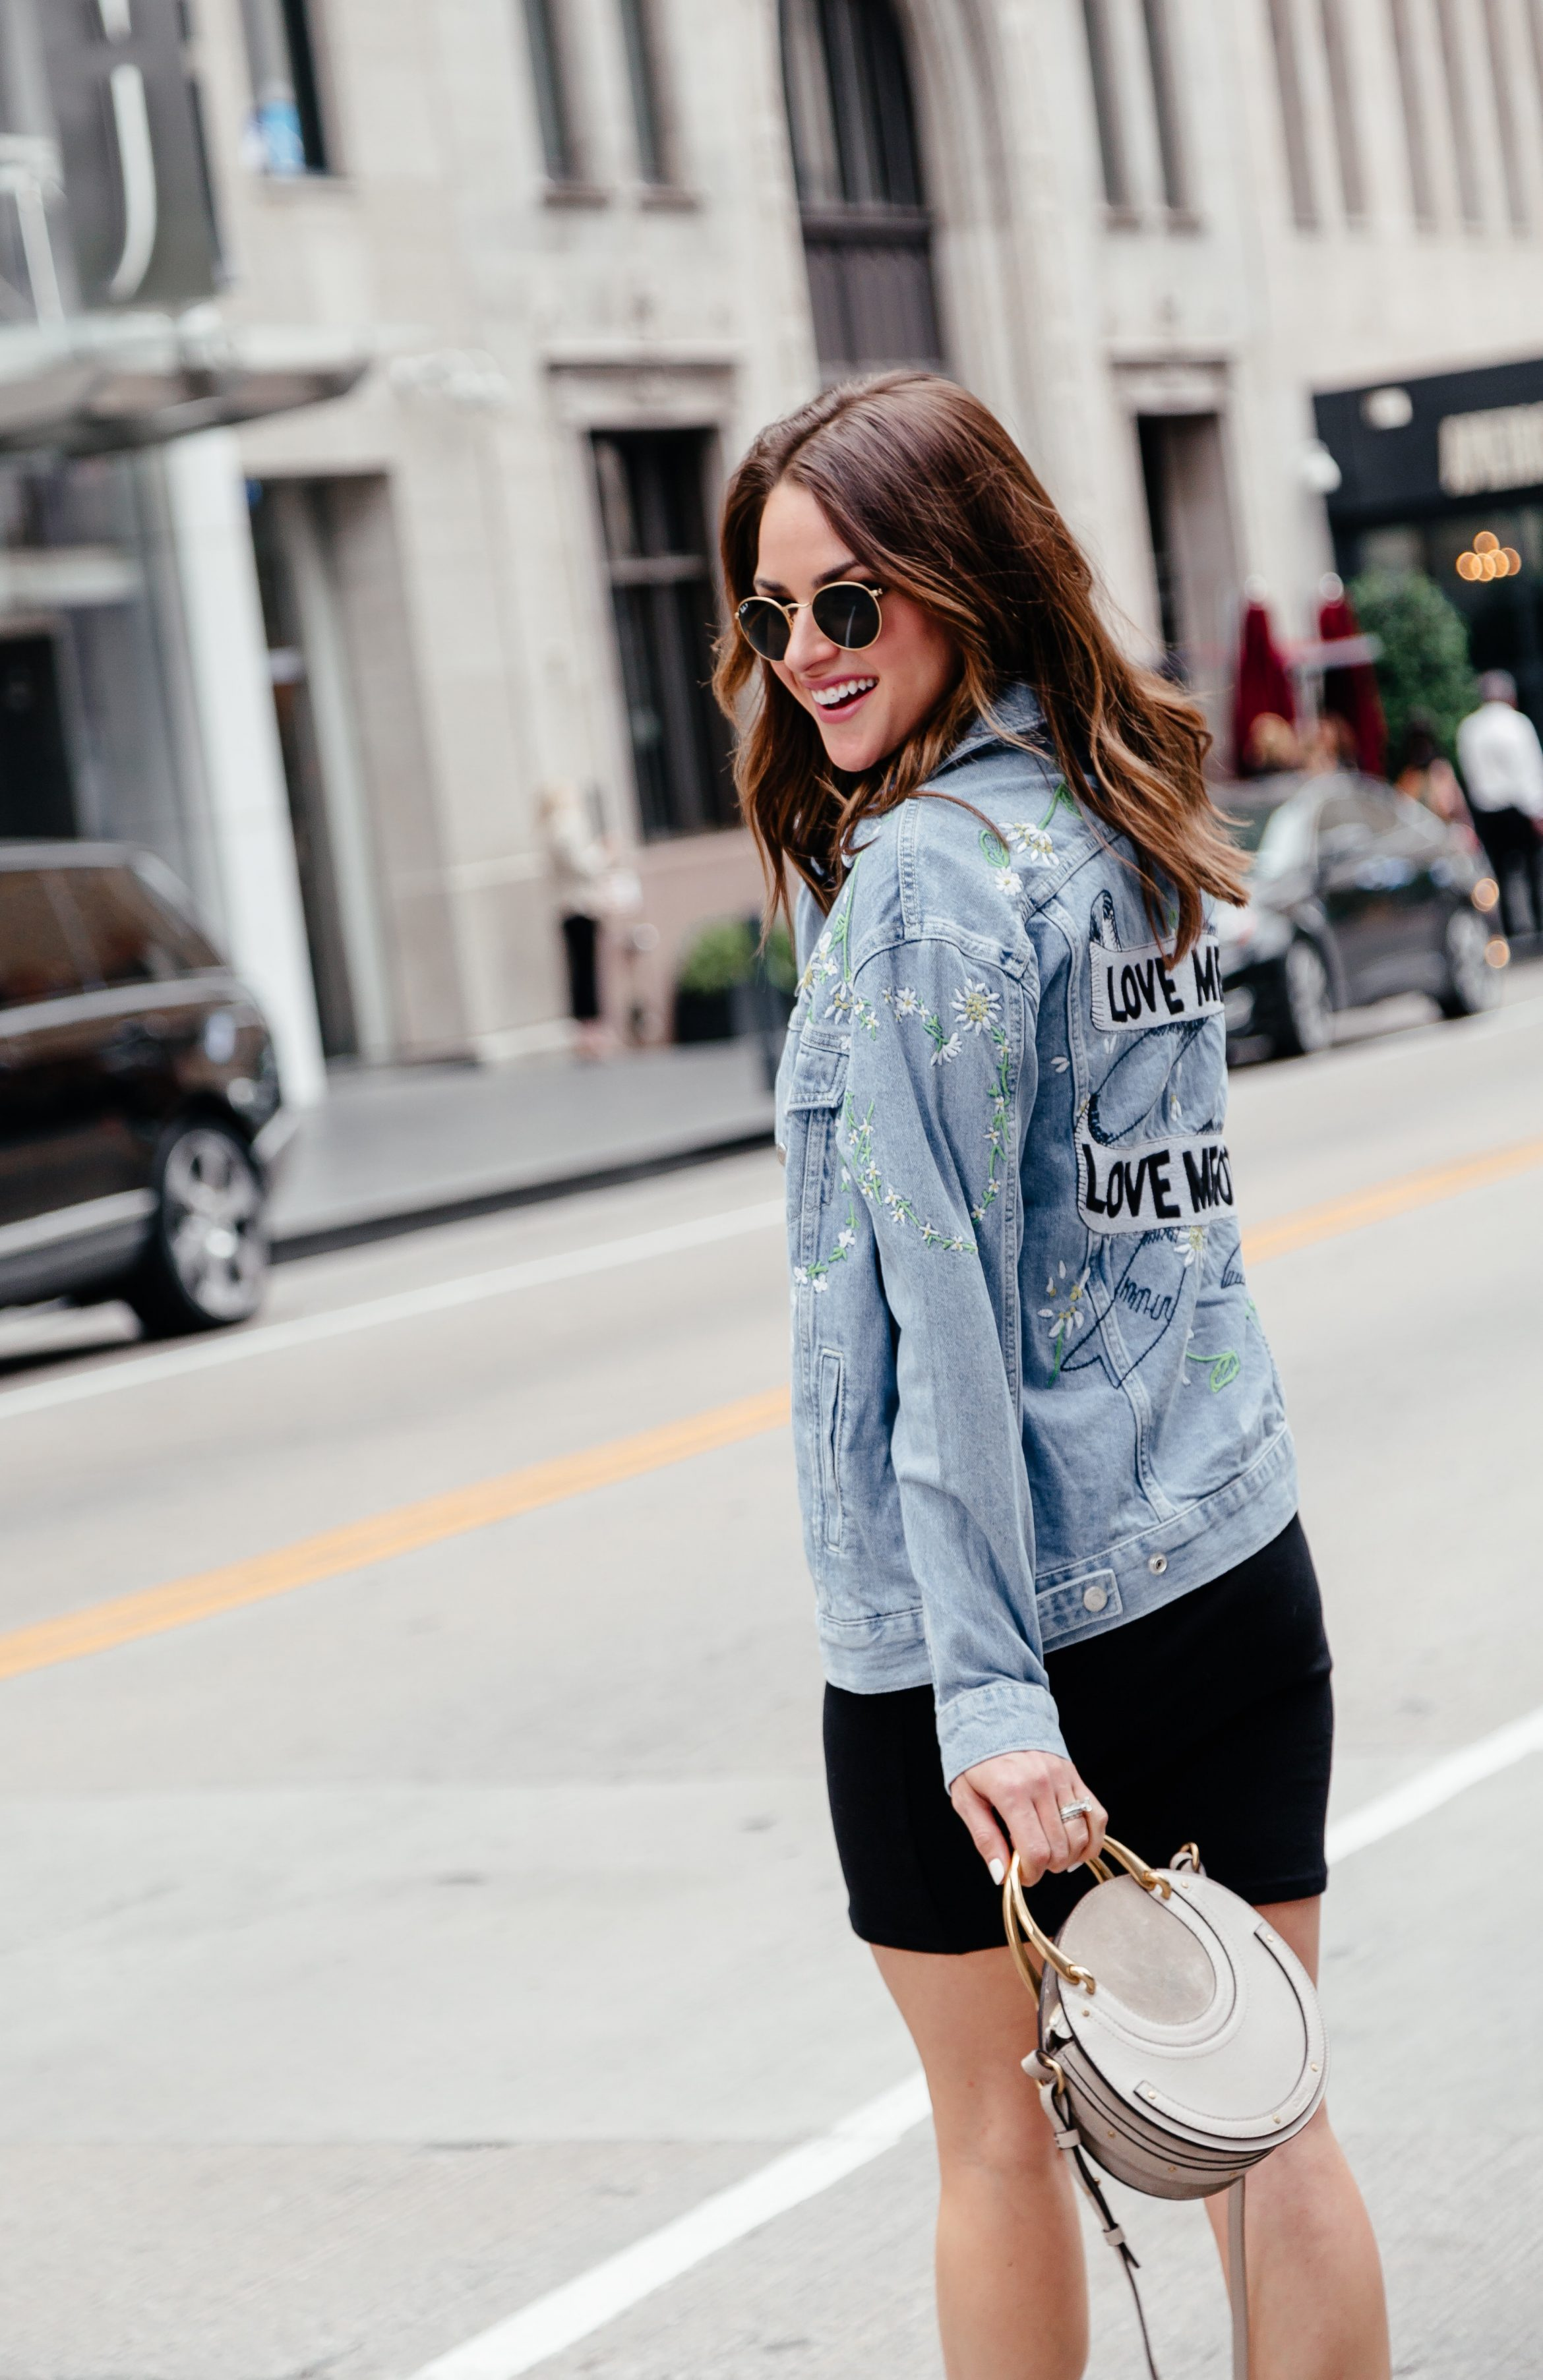 A Lo Profile wearing an embroidered denim jacket from Topshop at Nordstrom  with a black dress